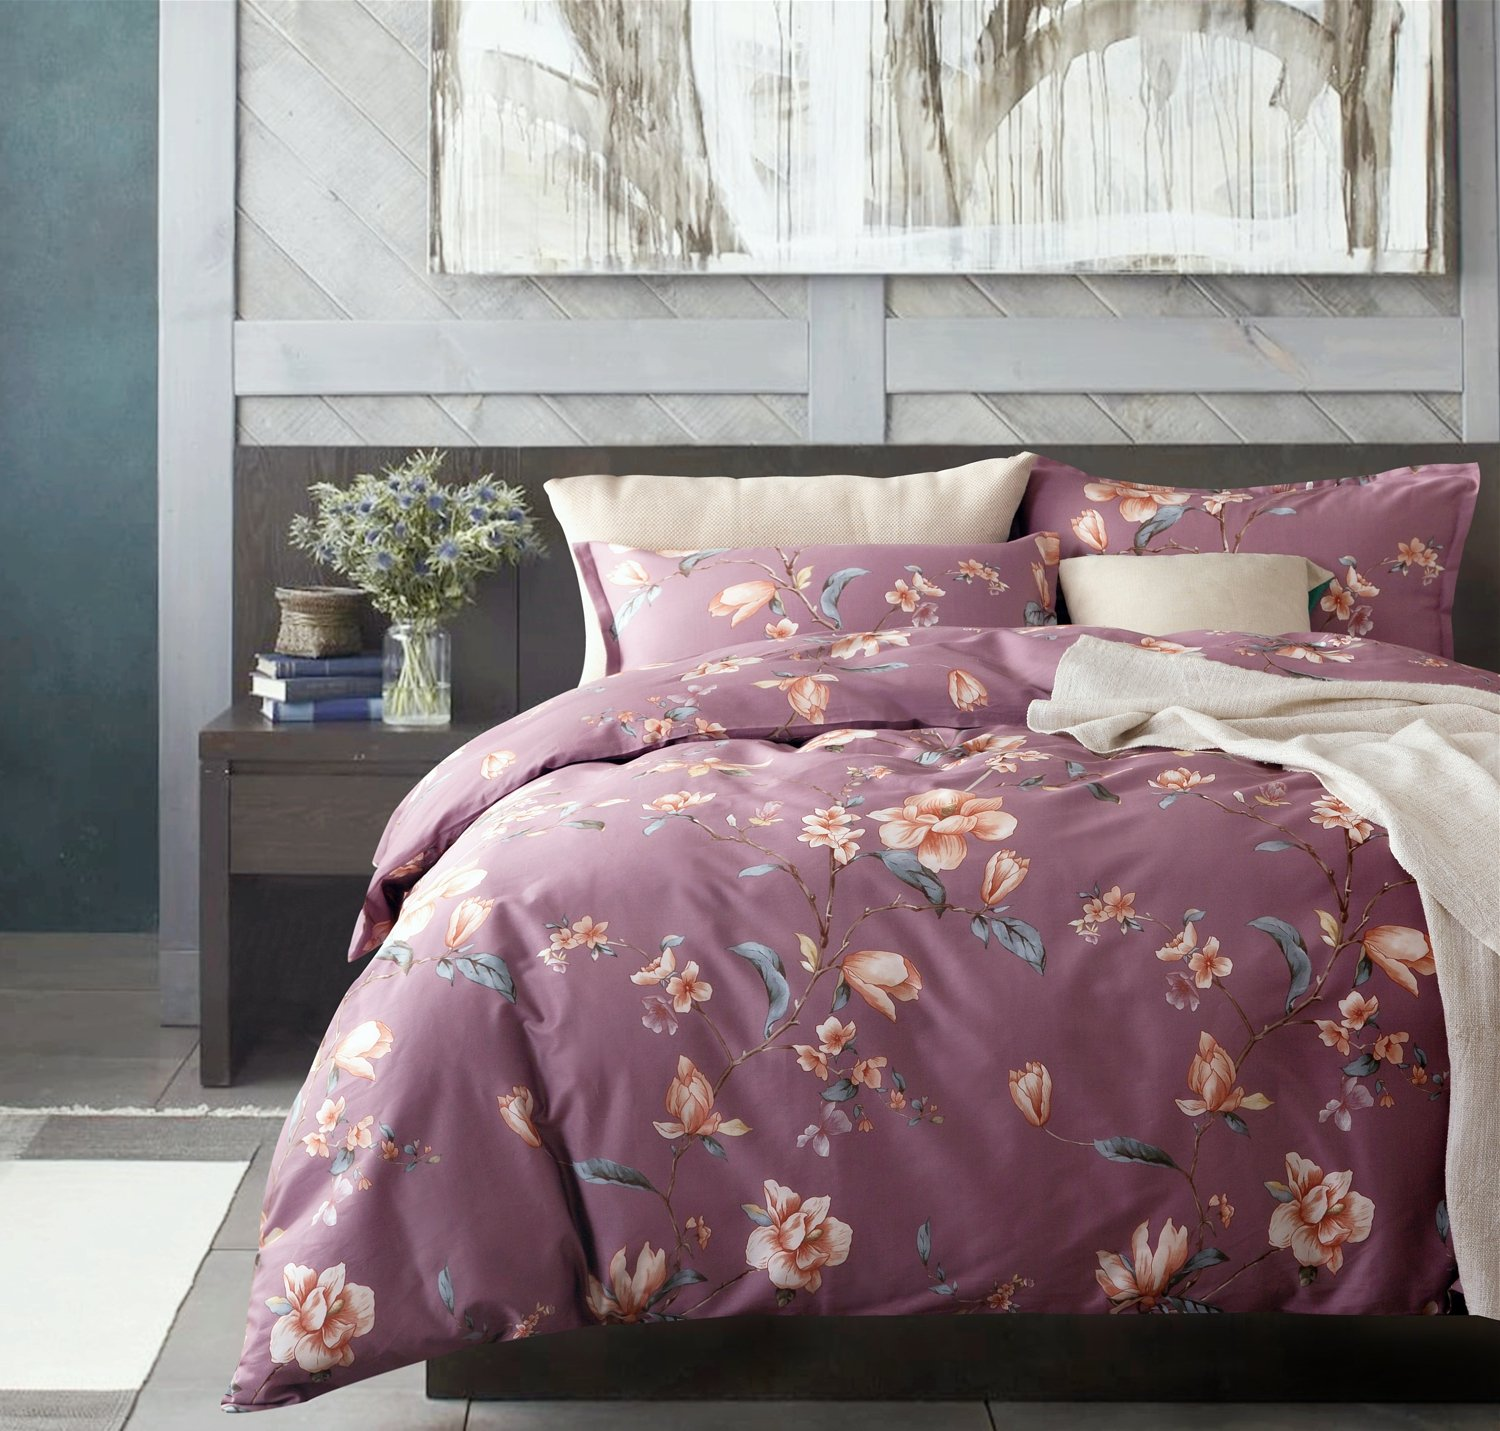 Modern Watercolor Flowers Print Duvet Quilt Cover 3pc Set Lilac Orchid Magnolia Blossom Leaf Branches Cotton Sateen